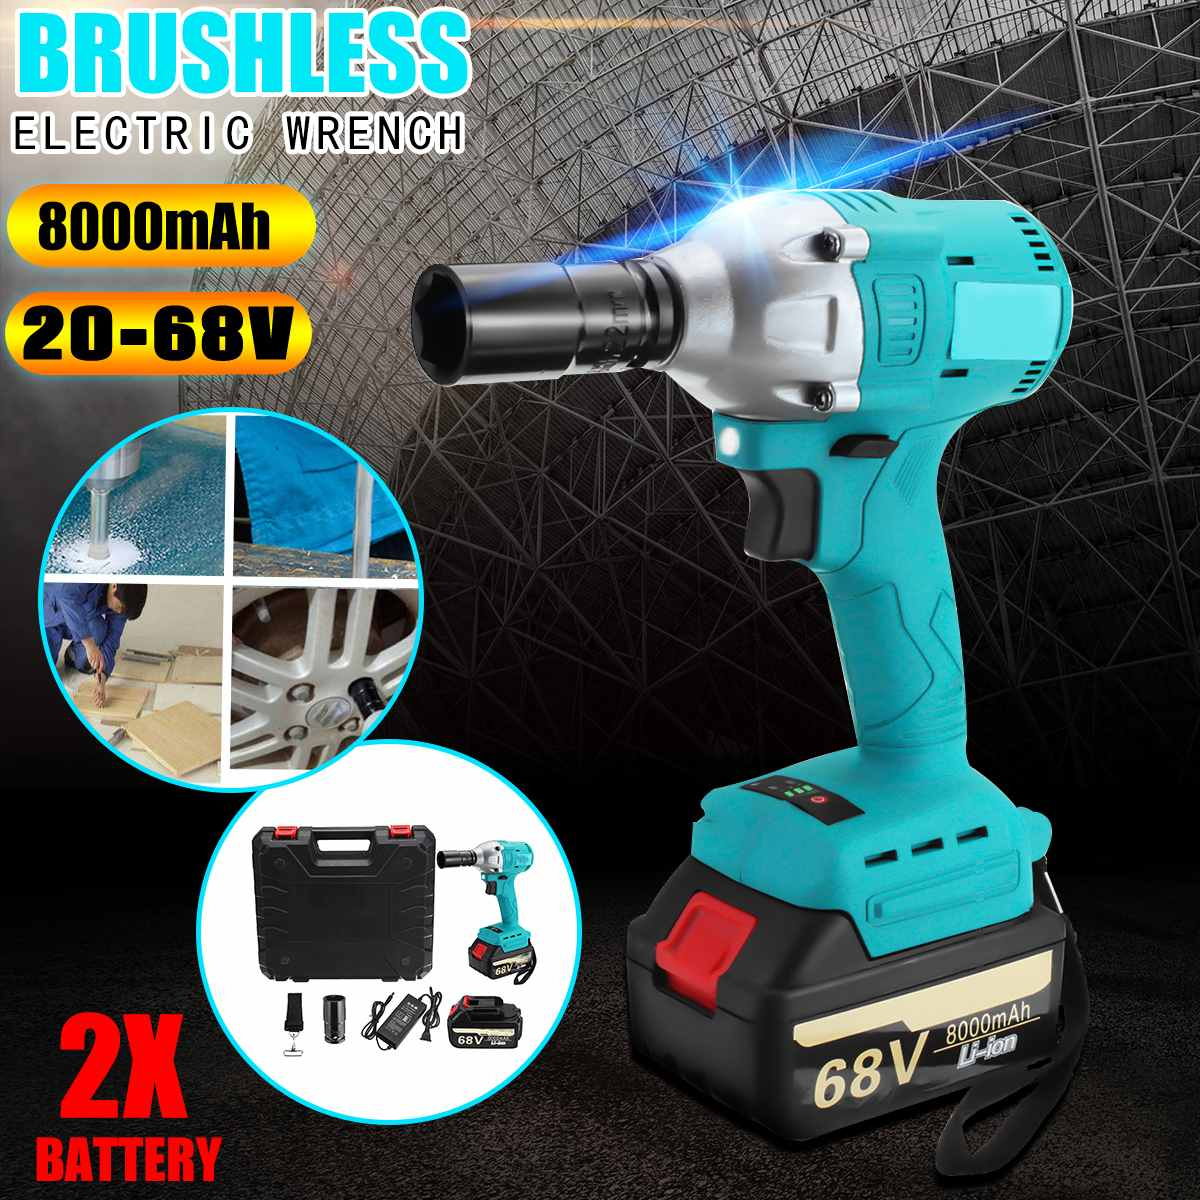 68v 8000mAH Rechargeable Lithium Battery Dual Speed Brushless Electric Impact Wrench Cordless Hand Drill Installation Power Tool brushless cordless electric wrench impact socket wrench 68v 8000mah li battery hand drill installation power tools